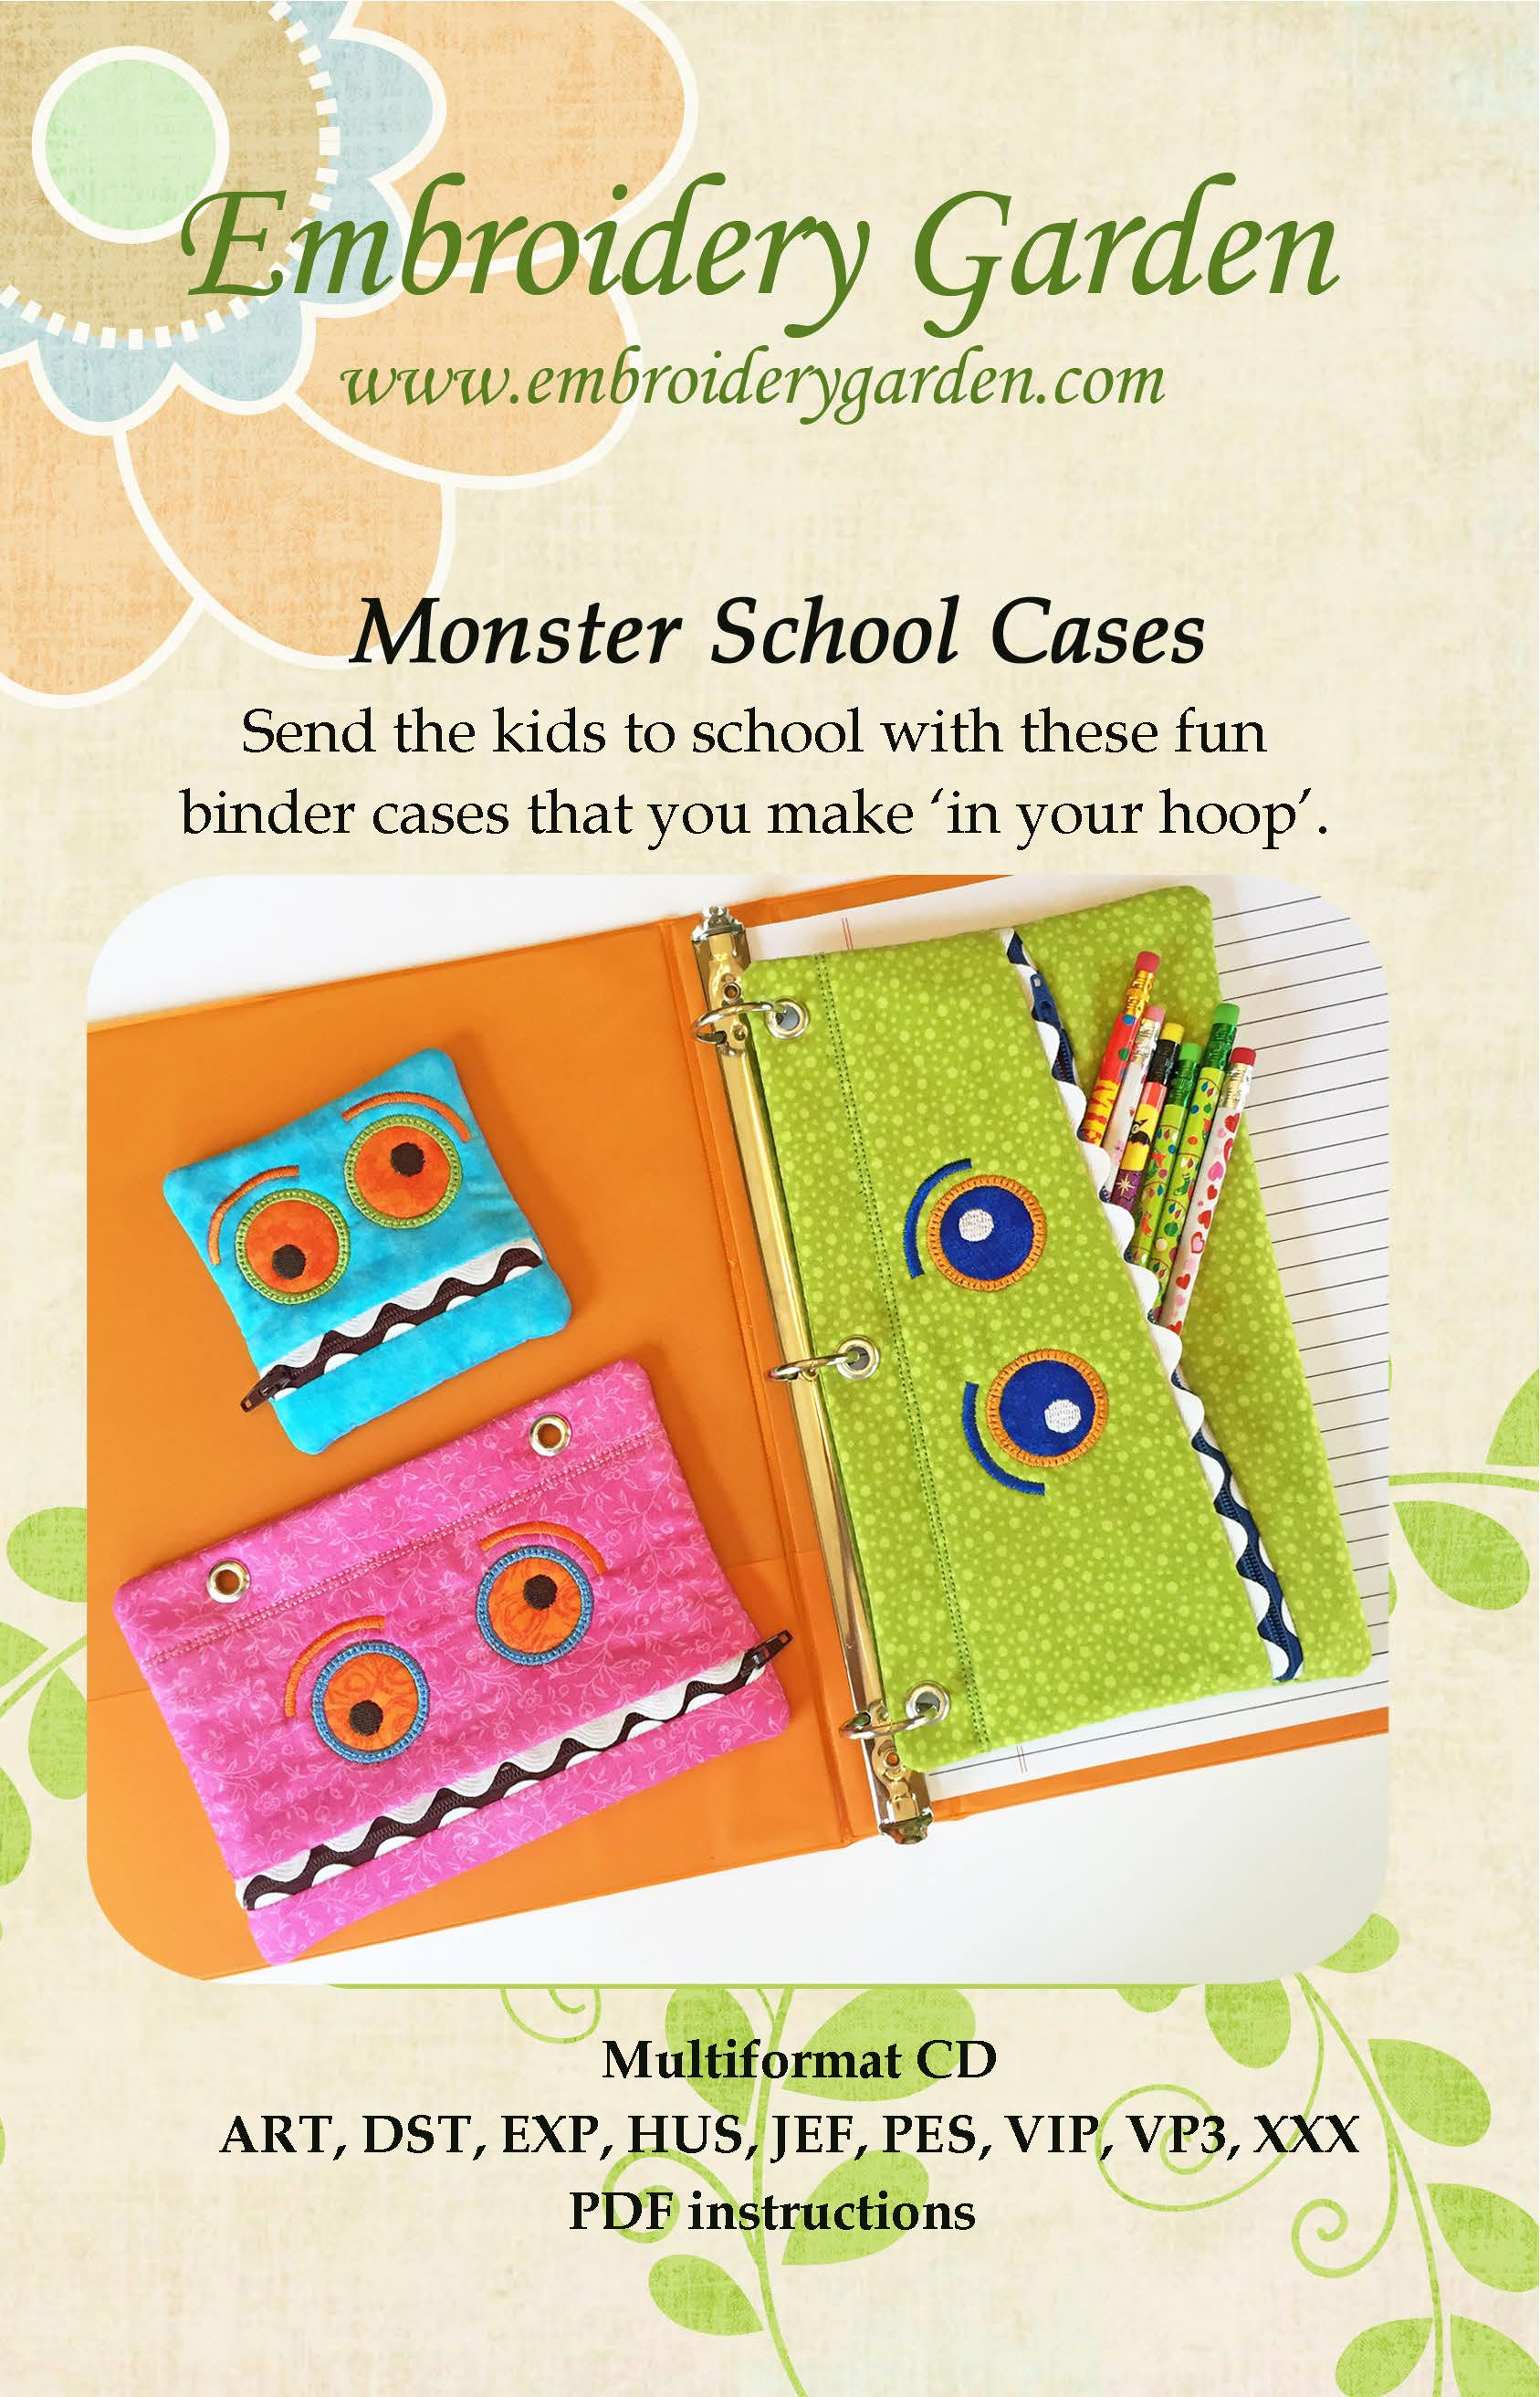 Embroidery Garden Monster School Cases